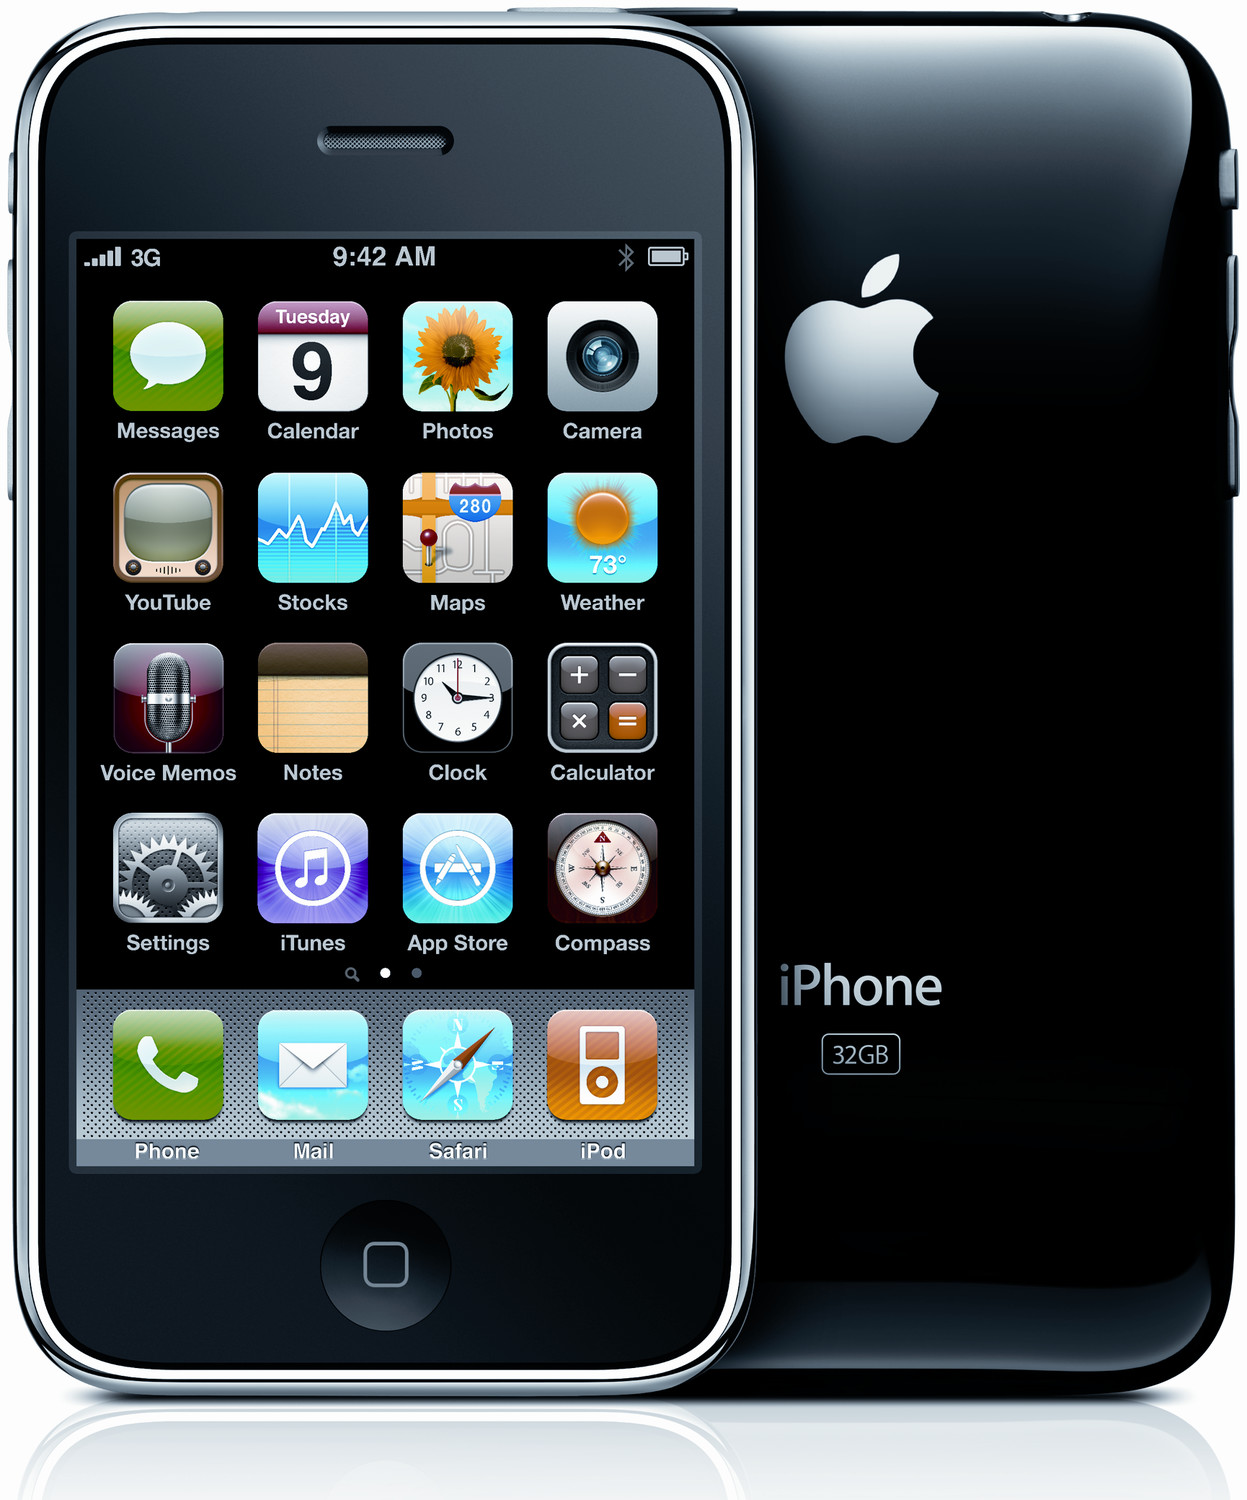 apple iphone 3gs 16gb The apple iphone 3gs is powered by a 600 mhz cortex-a8 cpu processor w  the latest apple iphone 3gs price in malaysia market is range.